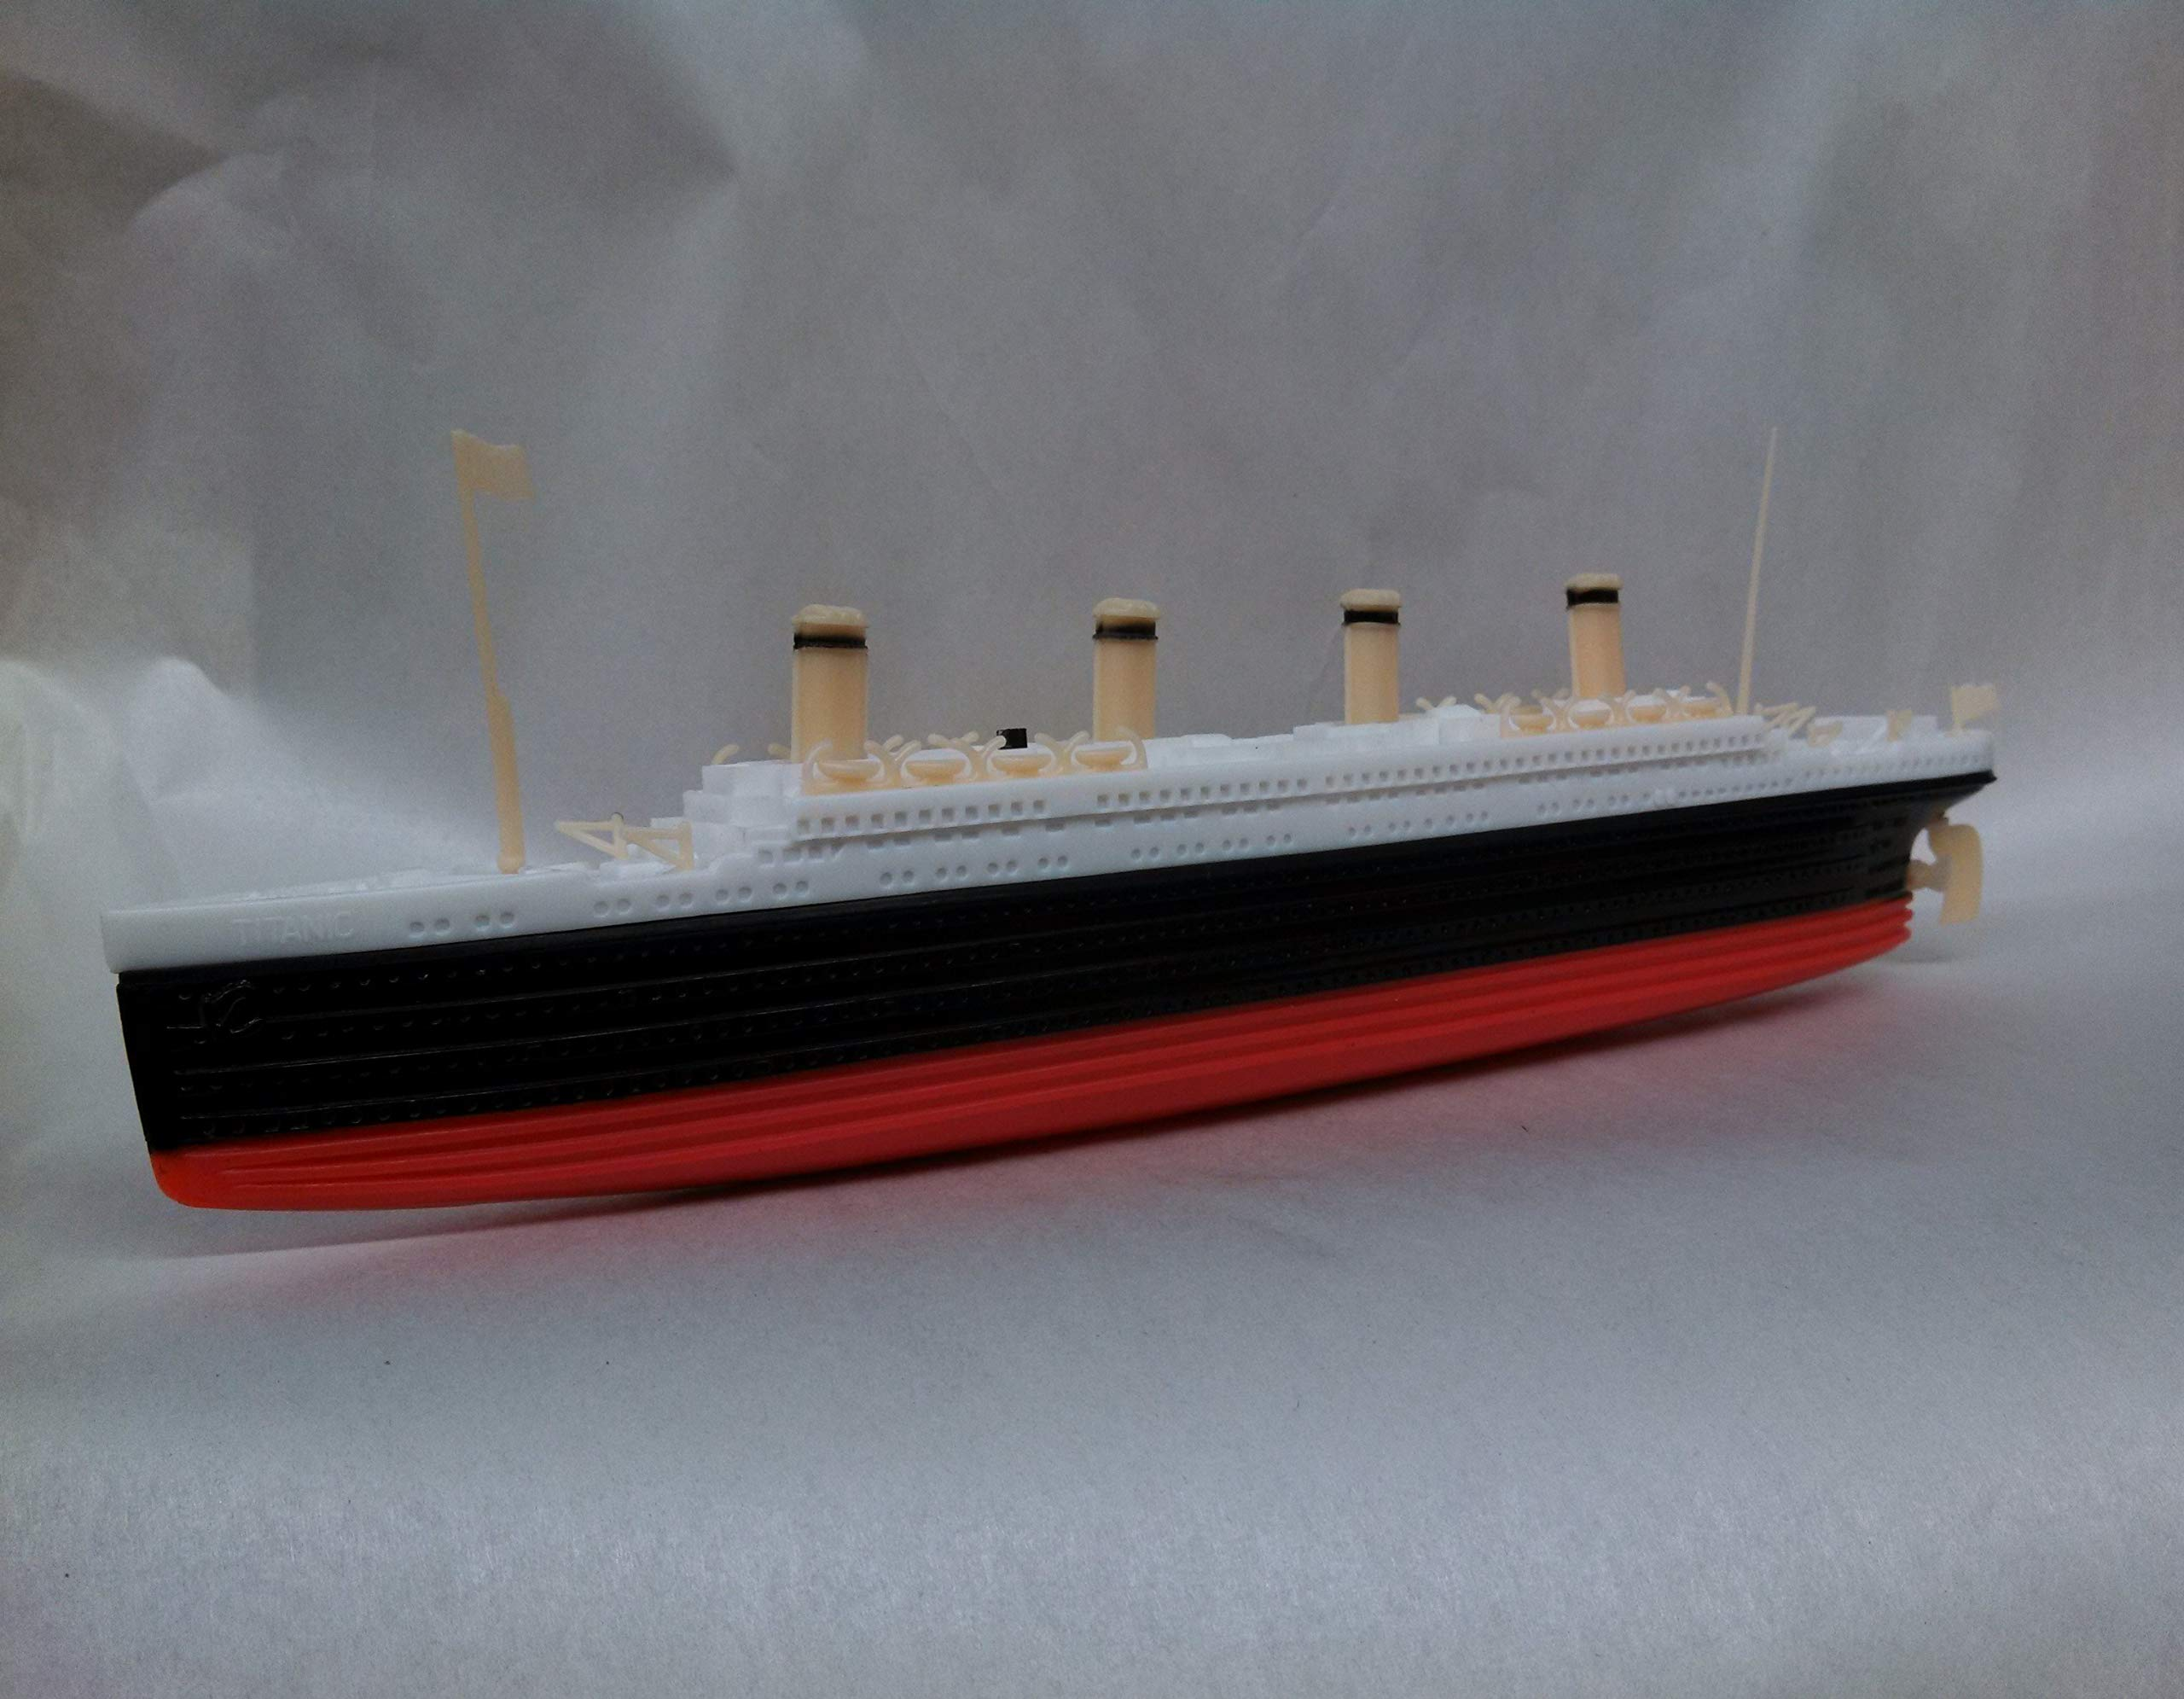 Atlantis Toy and Hobby RMS Titanic Battery Powered Toy